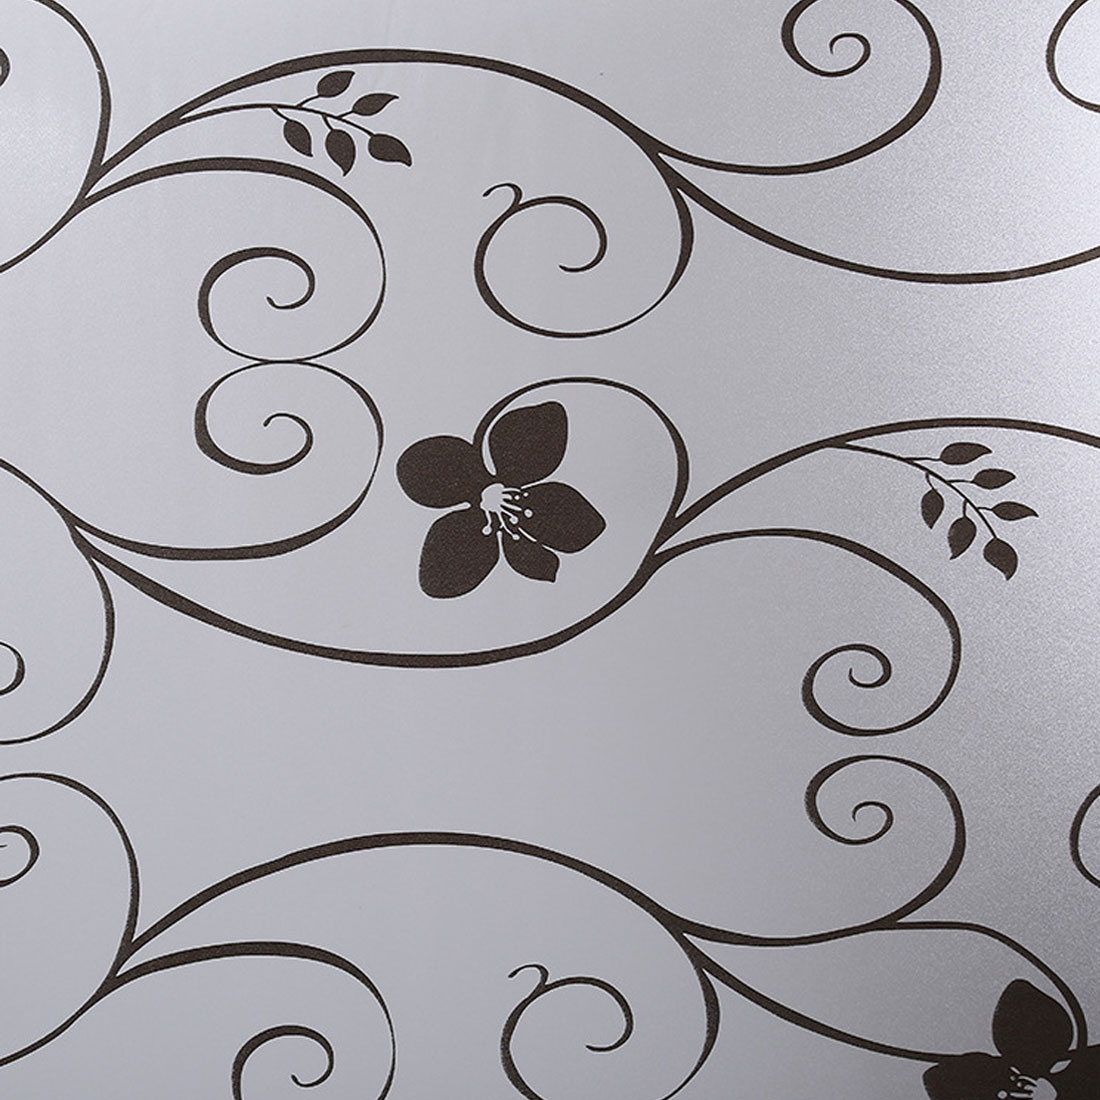 45x100cm Home Decorating Frosted Opaque Glass Window Film Privacy Glass Stickers Black&white Wrought Iron Flower